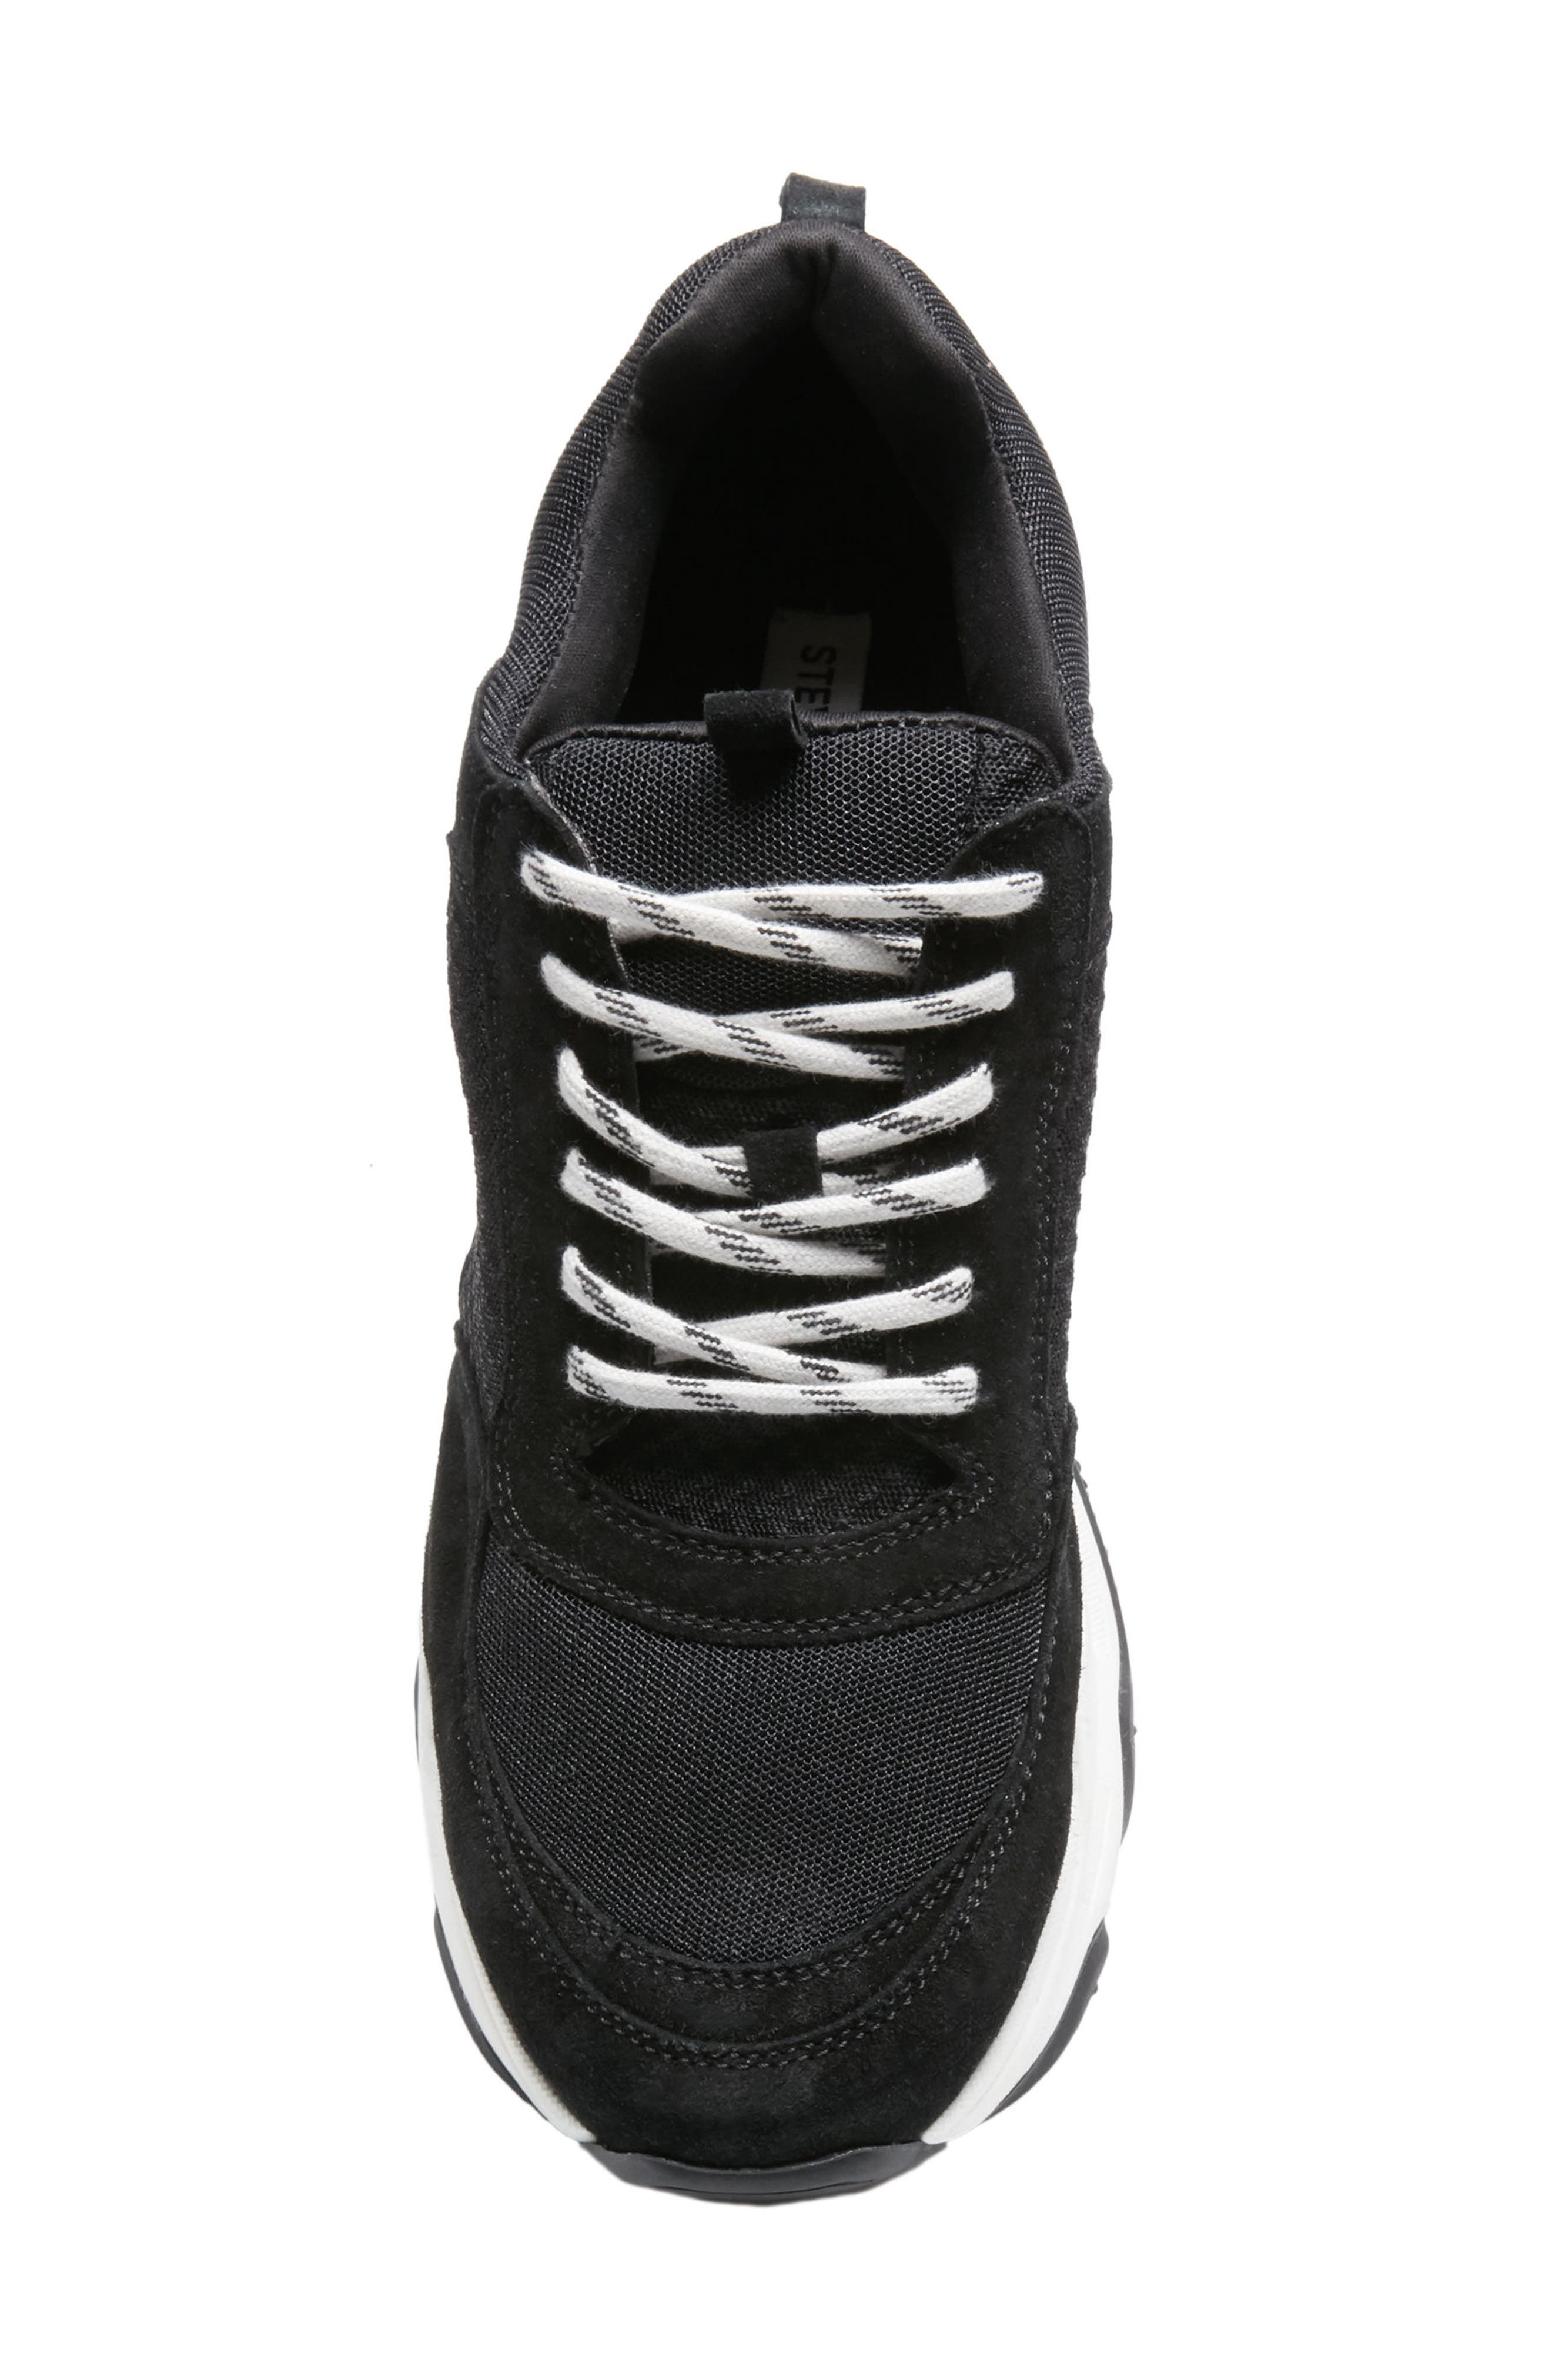 Russell Platform Sneaker,                             Alternate thumbnail 4, color,                             BLACK LEATHER